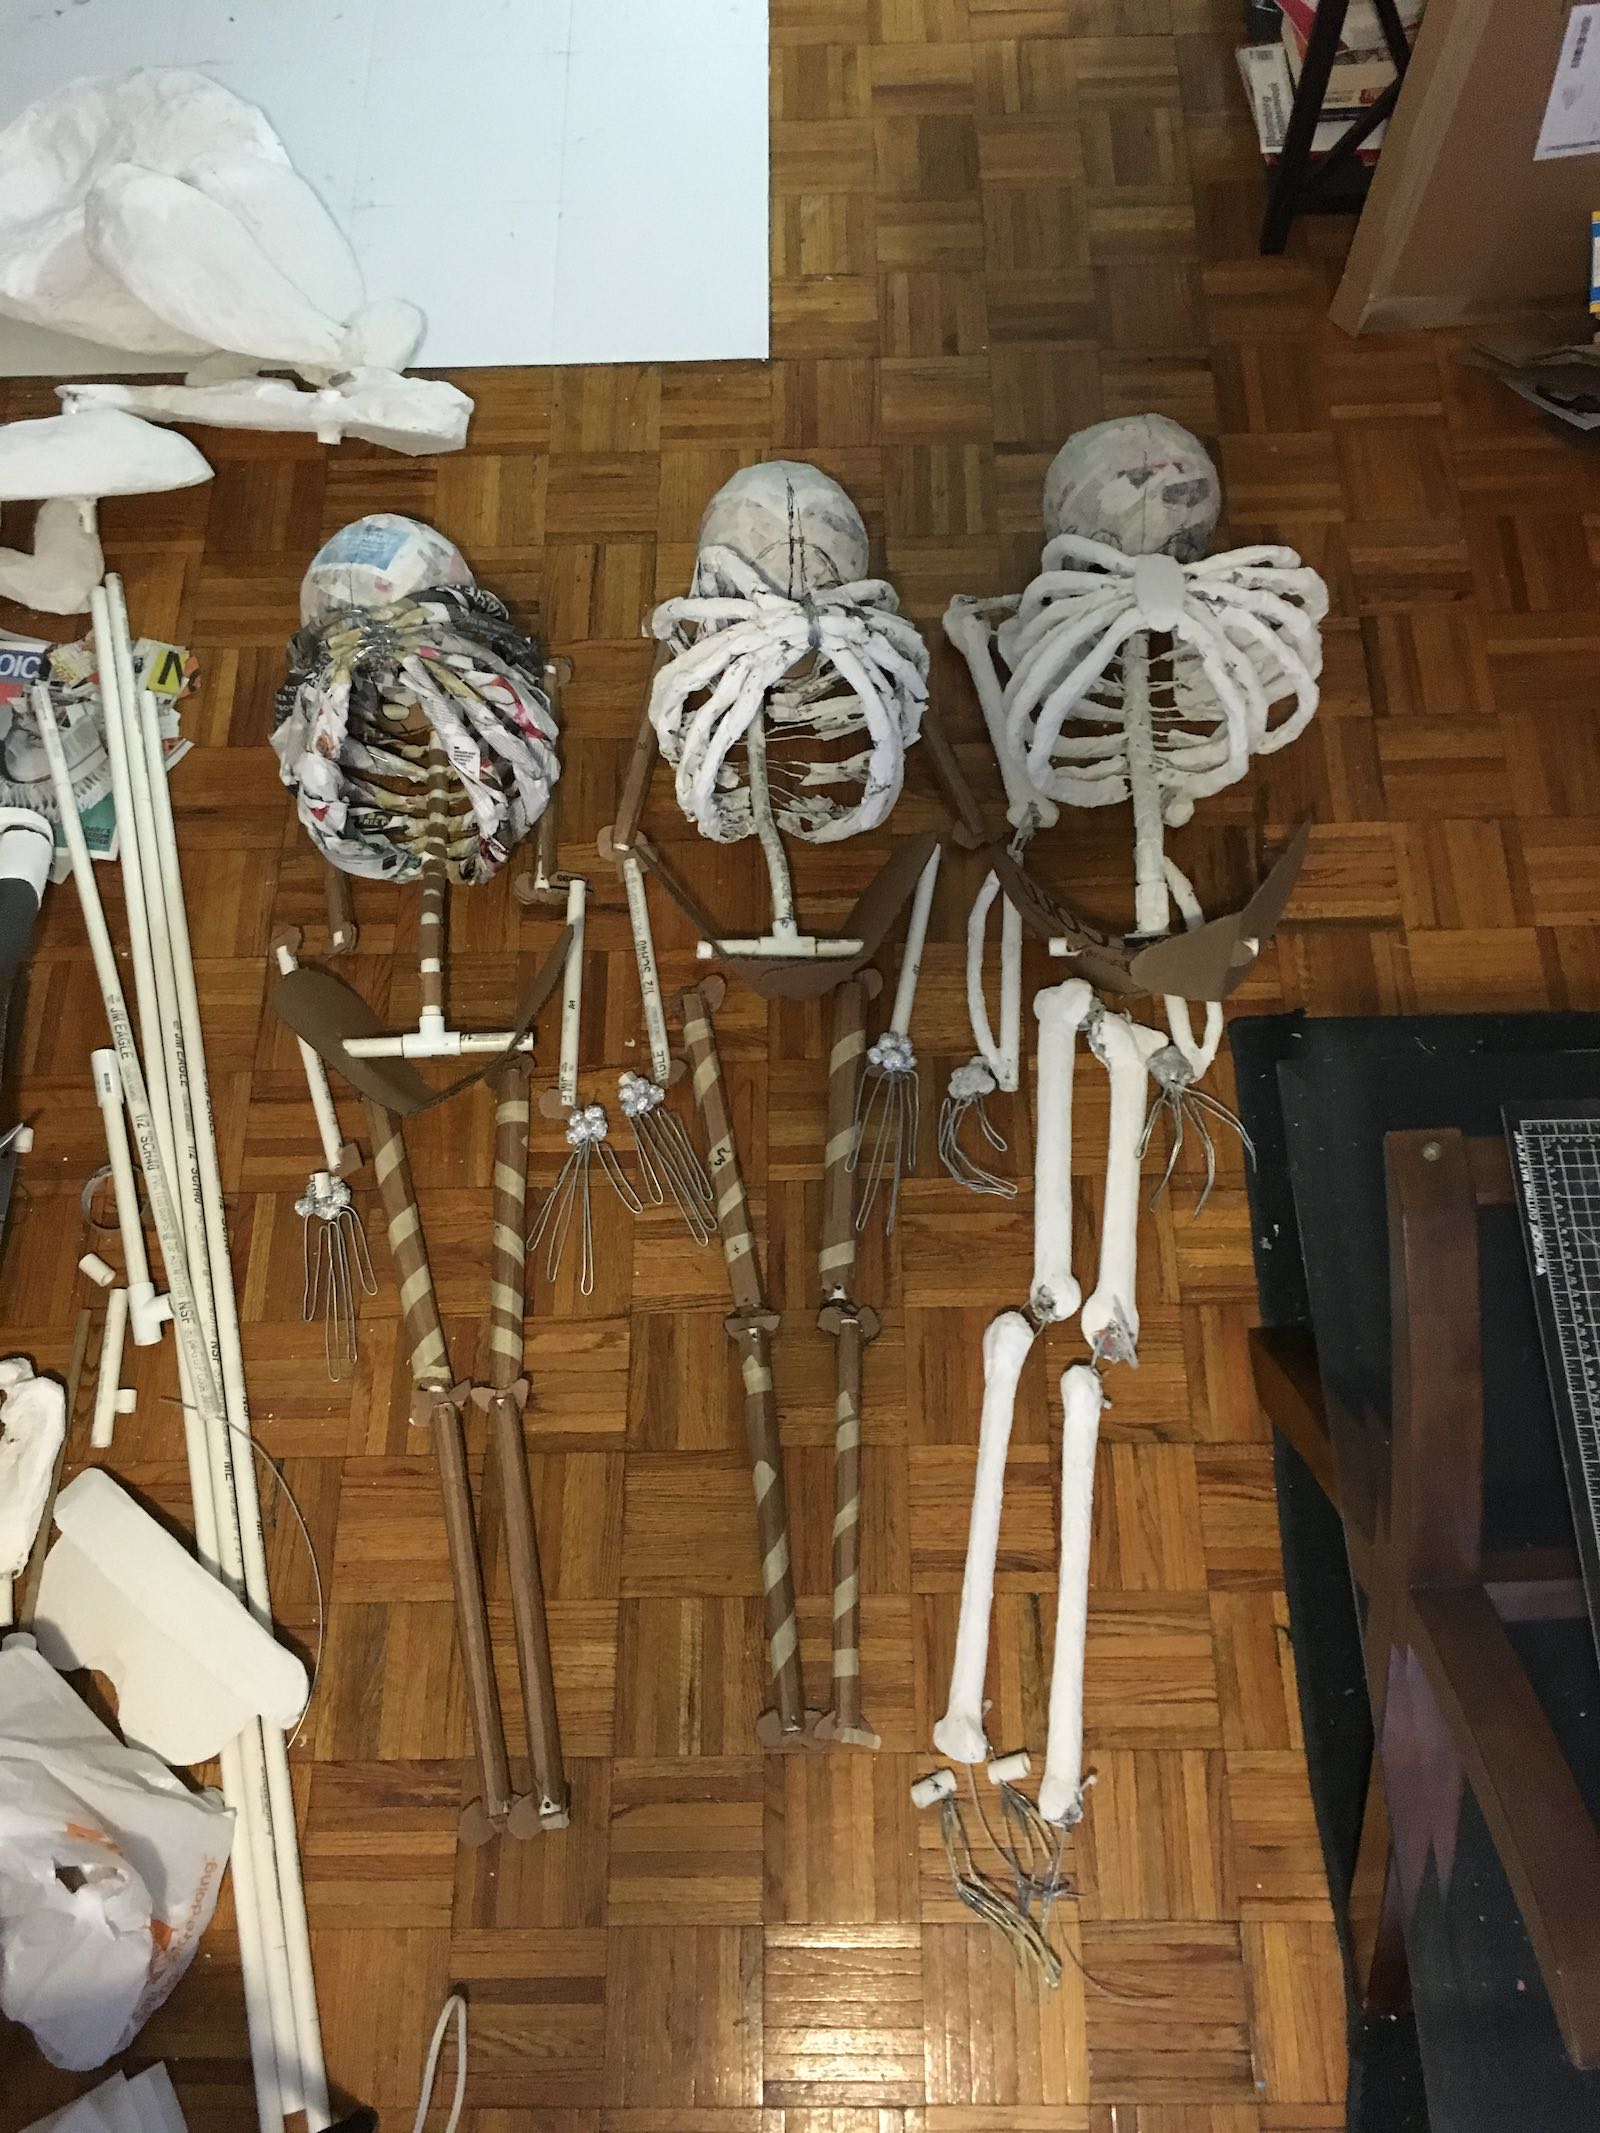 Three mostly-complete skeletons, laid out on the floor